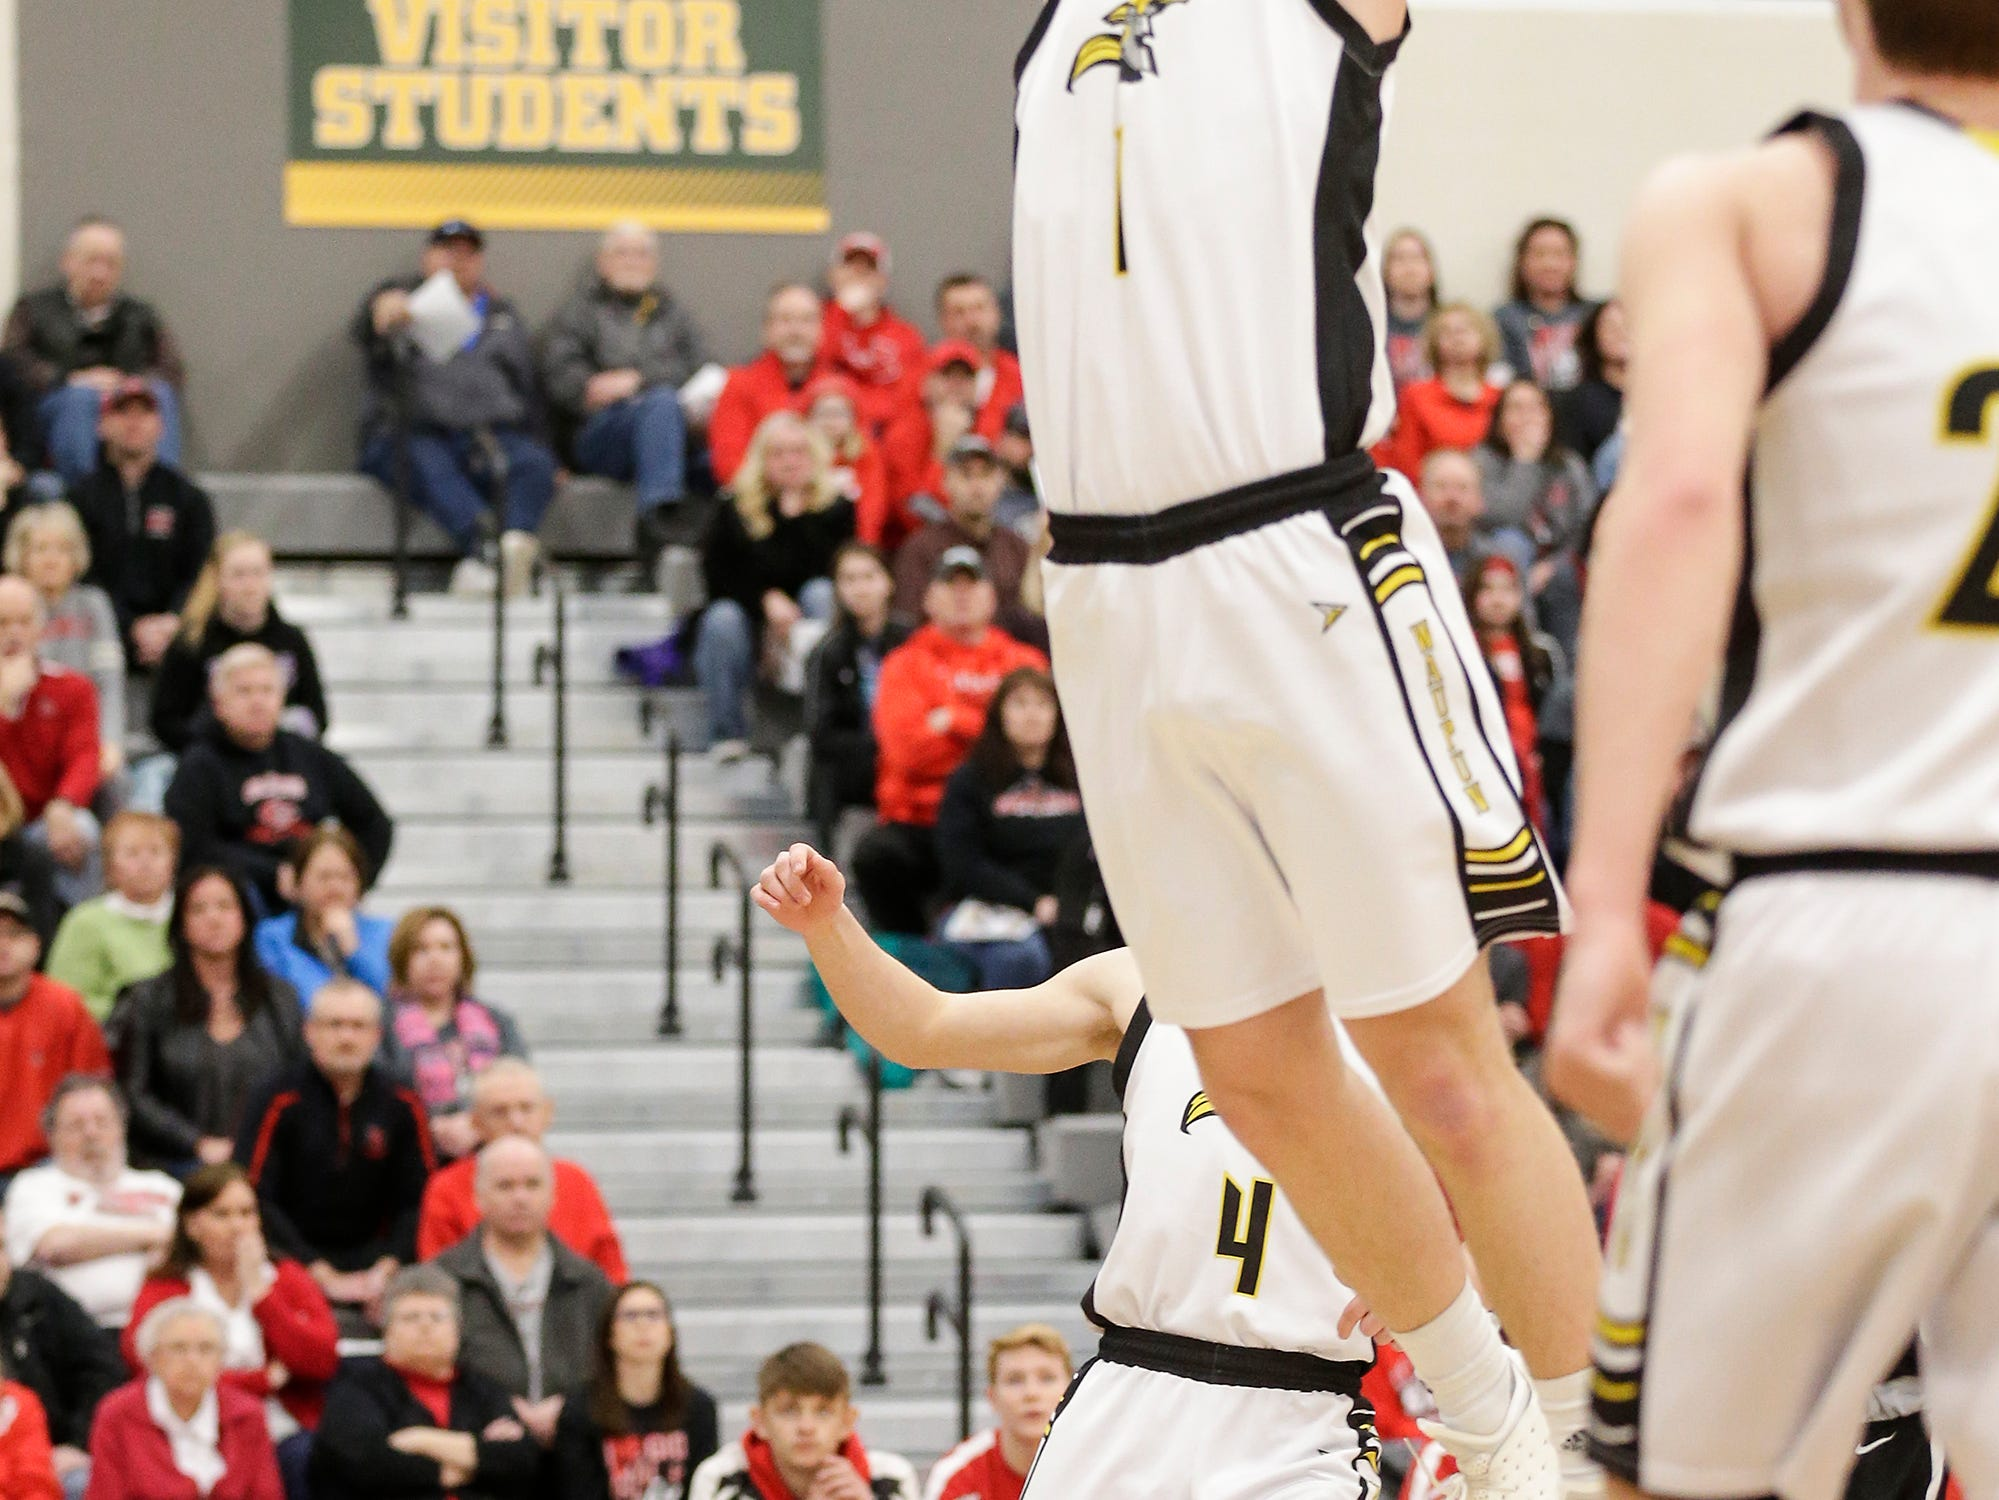 Waupun High School boys basketball's Marcus Domask dunks the ball against Columbus High School during their WIAA division 3 sectional semi-final game Thursday, March 7, 2019 in Beaver Dam, Wis. Waupun won the game 79-36. Doug Raflik/USA TODAY NETWORK-Wisconsin